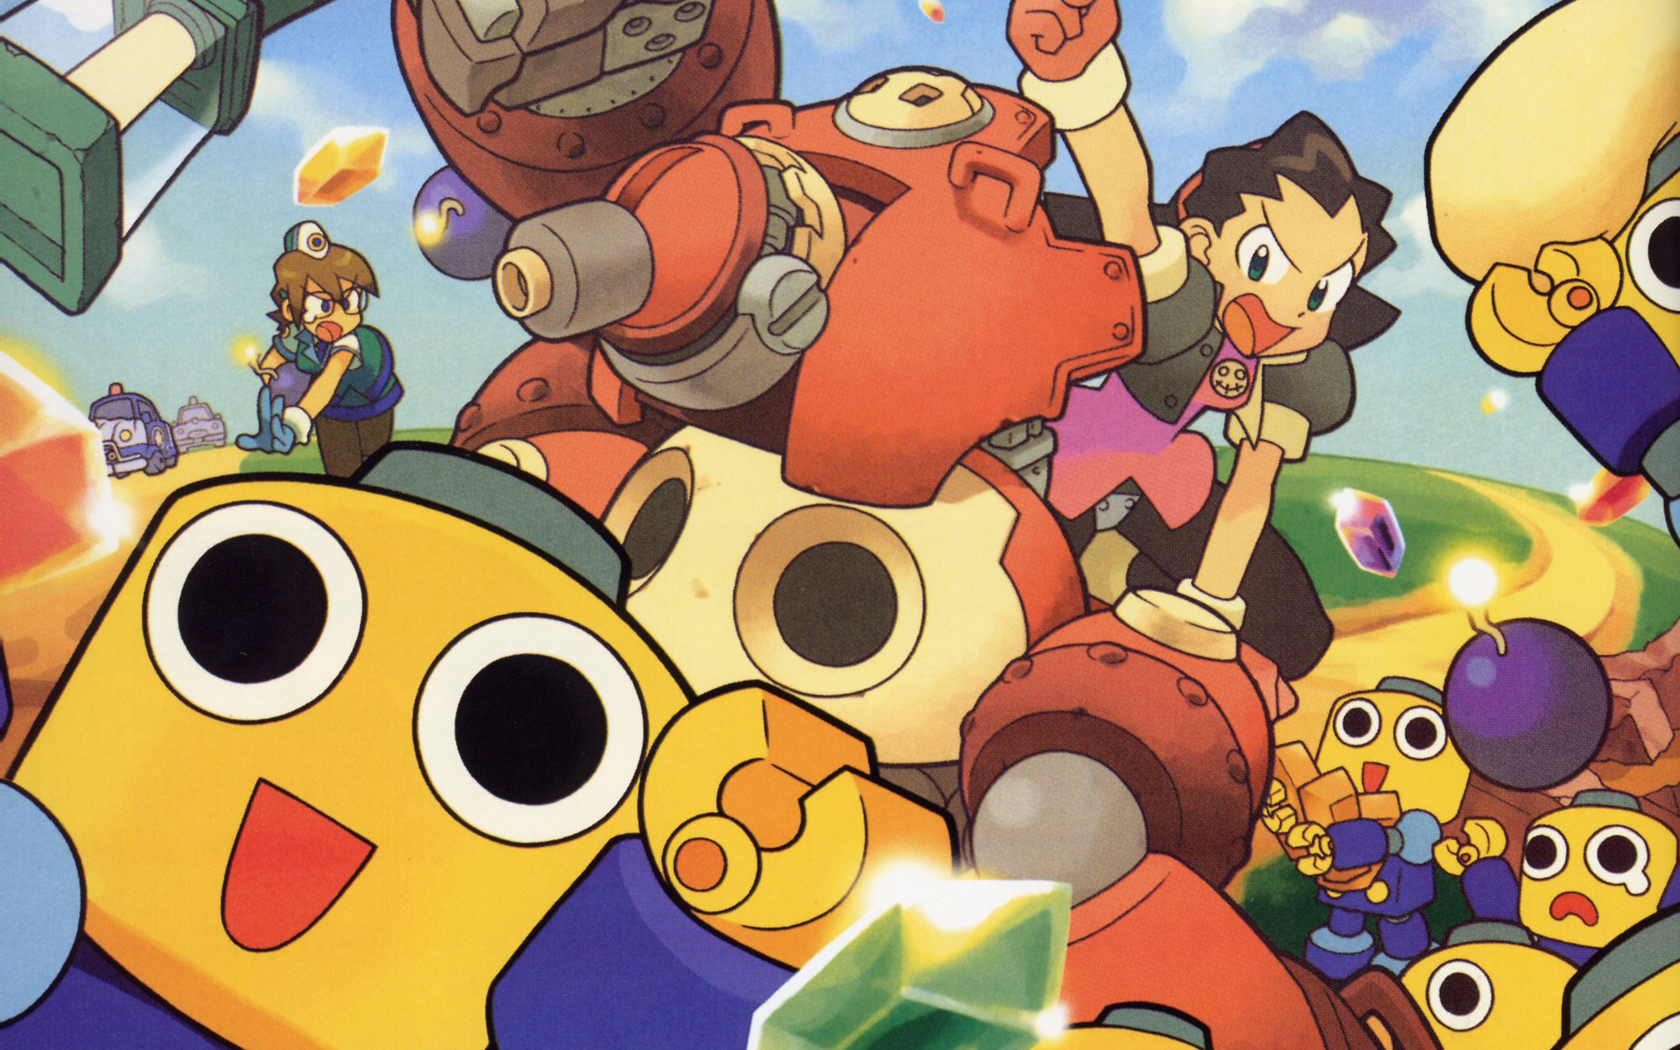 World Of Warcraft Wallpapers Hd 2 The Misadventures Of Tron Bonne Hd Wallpapers